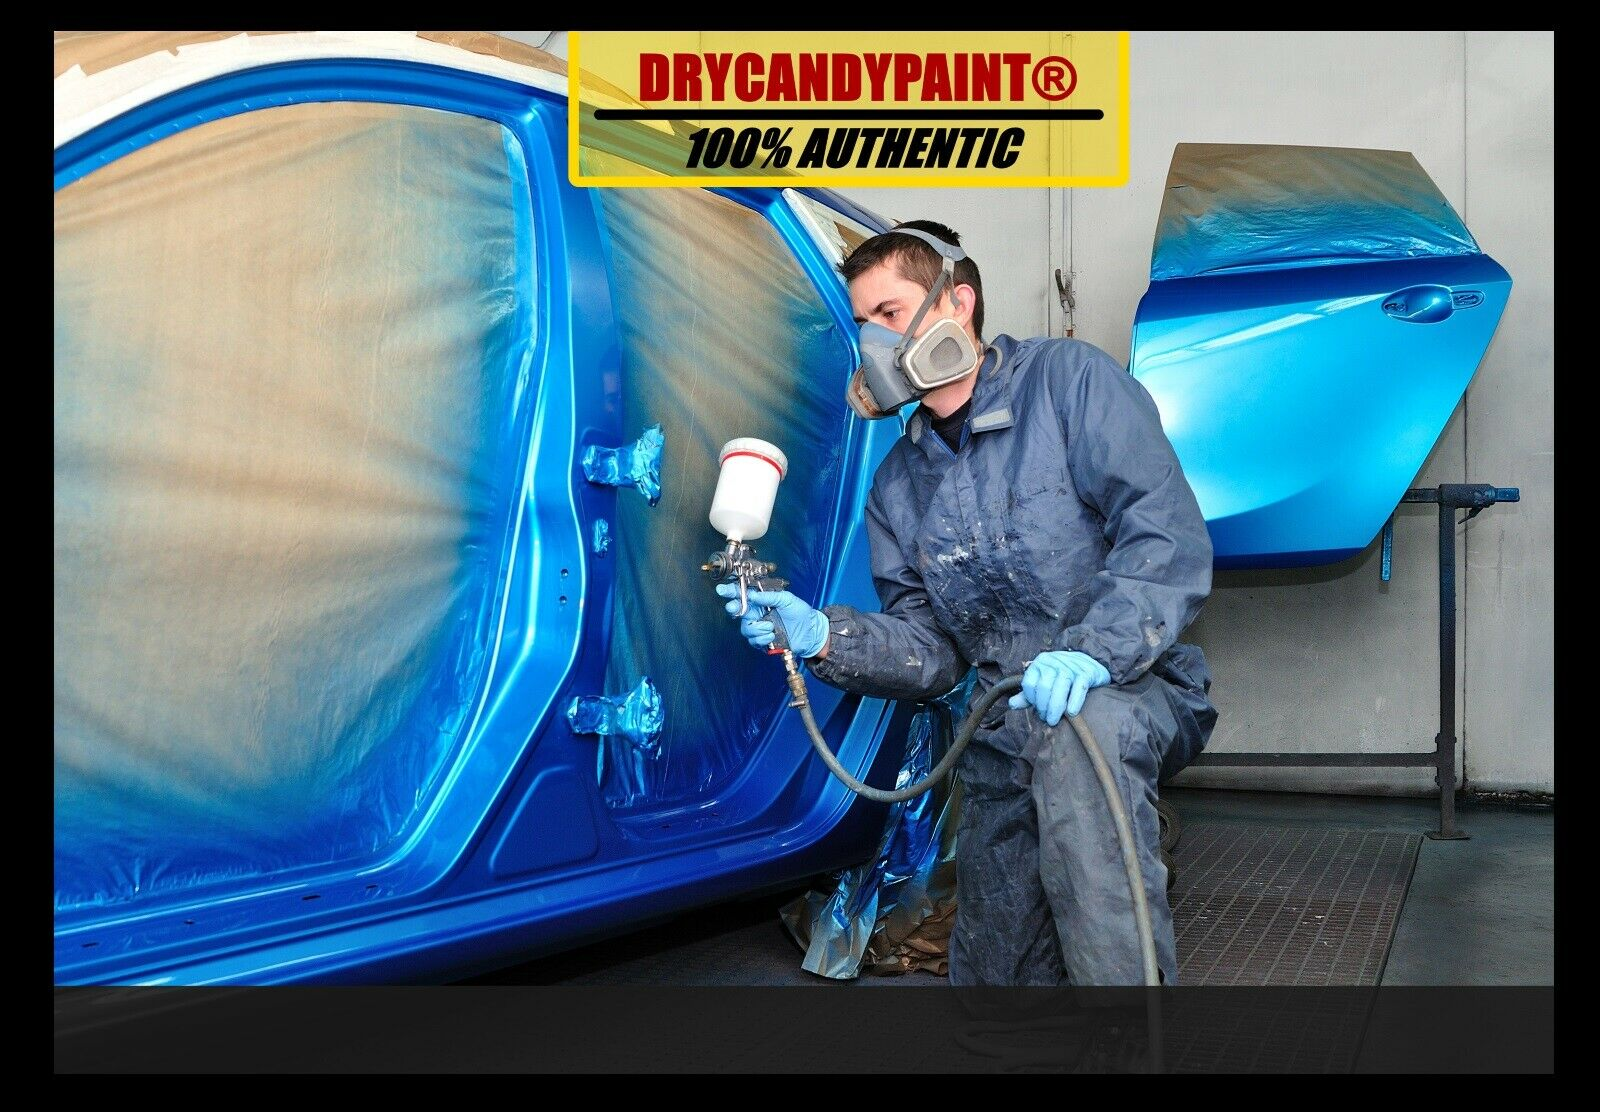 DRY CANDY PAINT ® 25g kit for Car - Automotive Pearl Paint with Pigment 🚗  HVLP   Shopping Bin - Search eBay faster